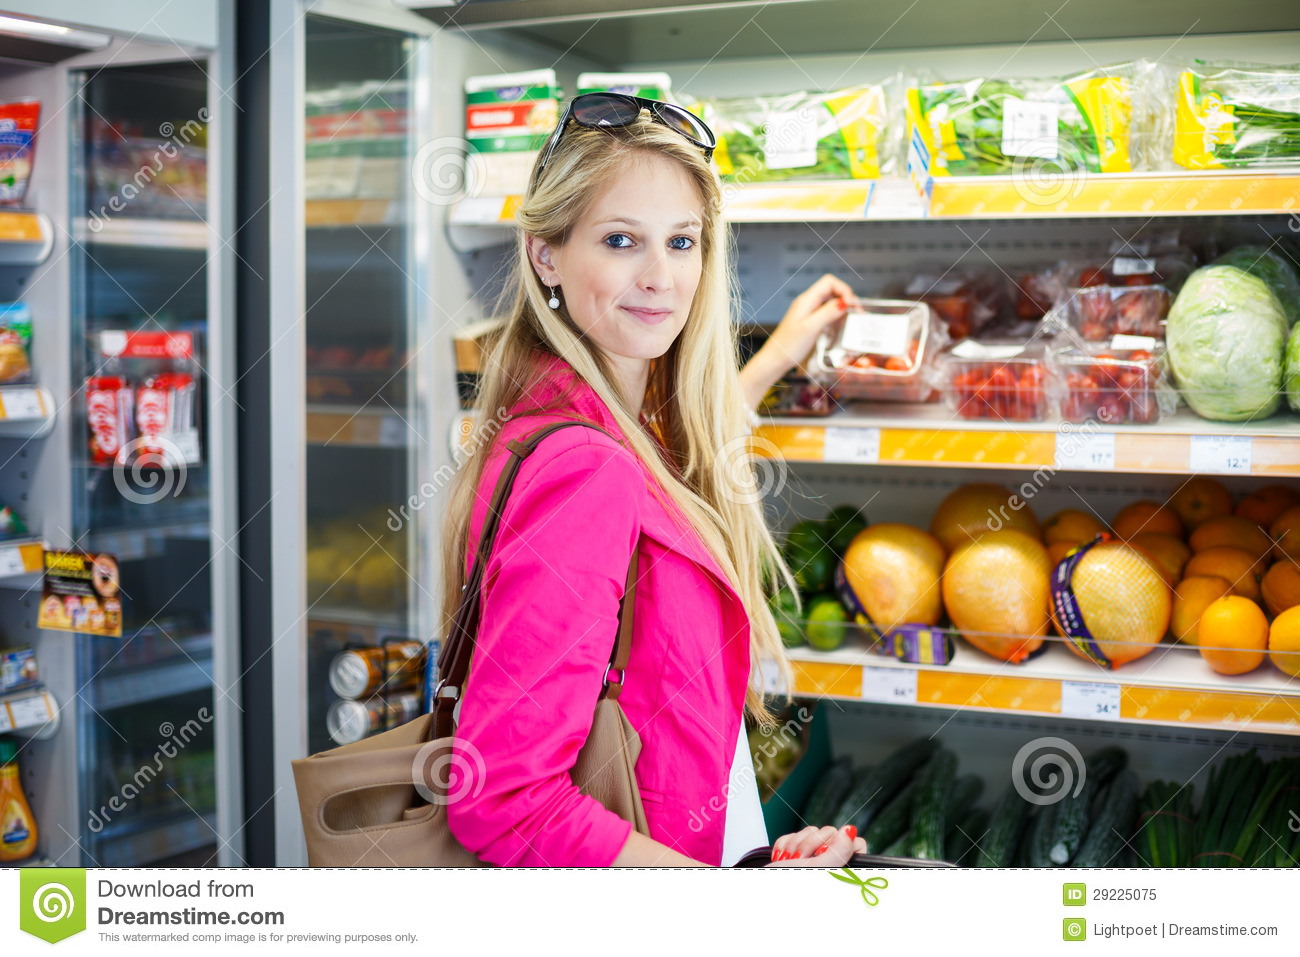 ... Grocery Store/supermarket Royalty Free Stock Photo - Image: 29225075